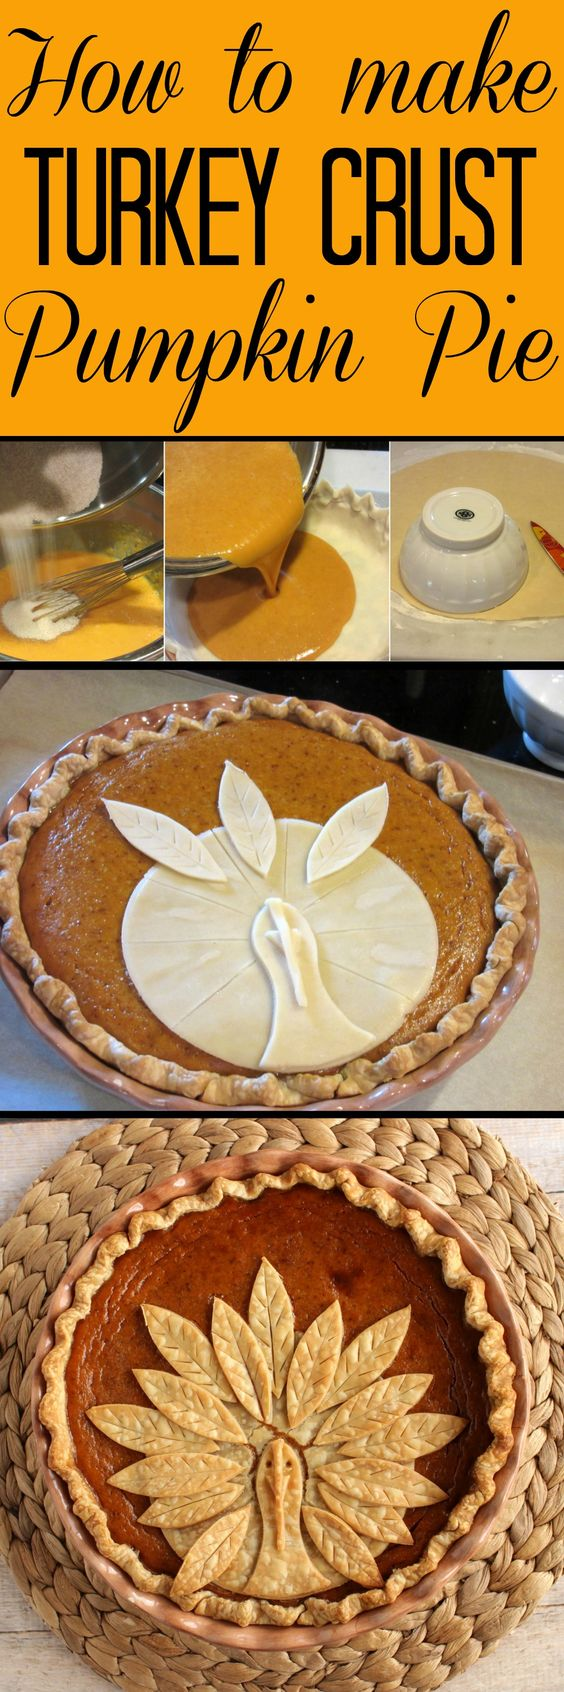 Adorable Turkey Crust Pumpkin Pie.